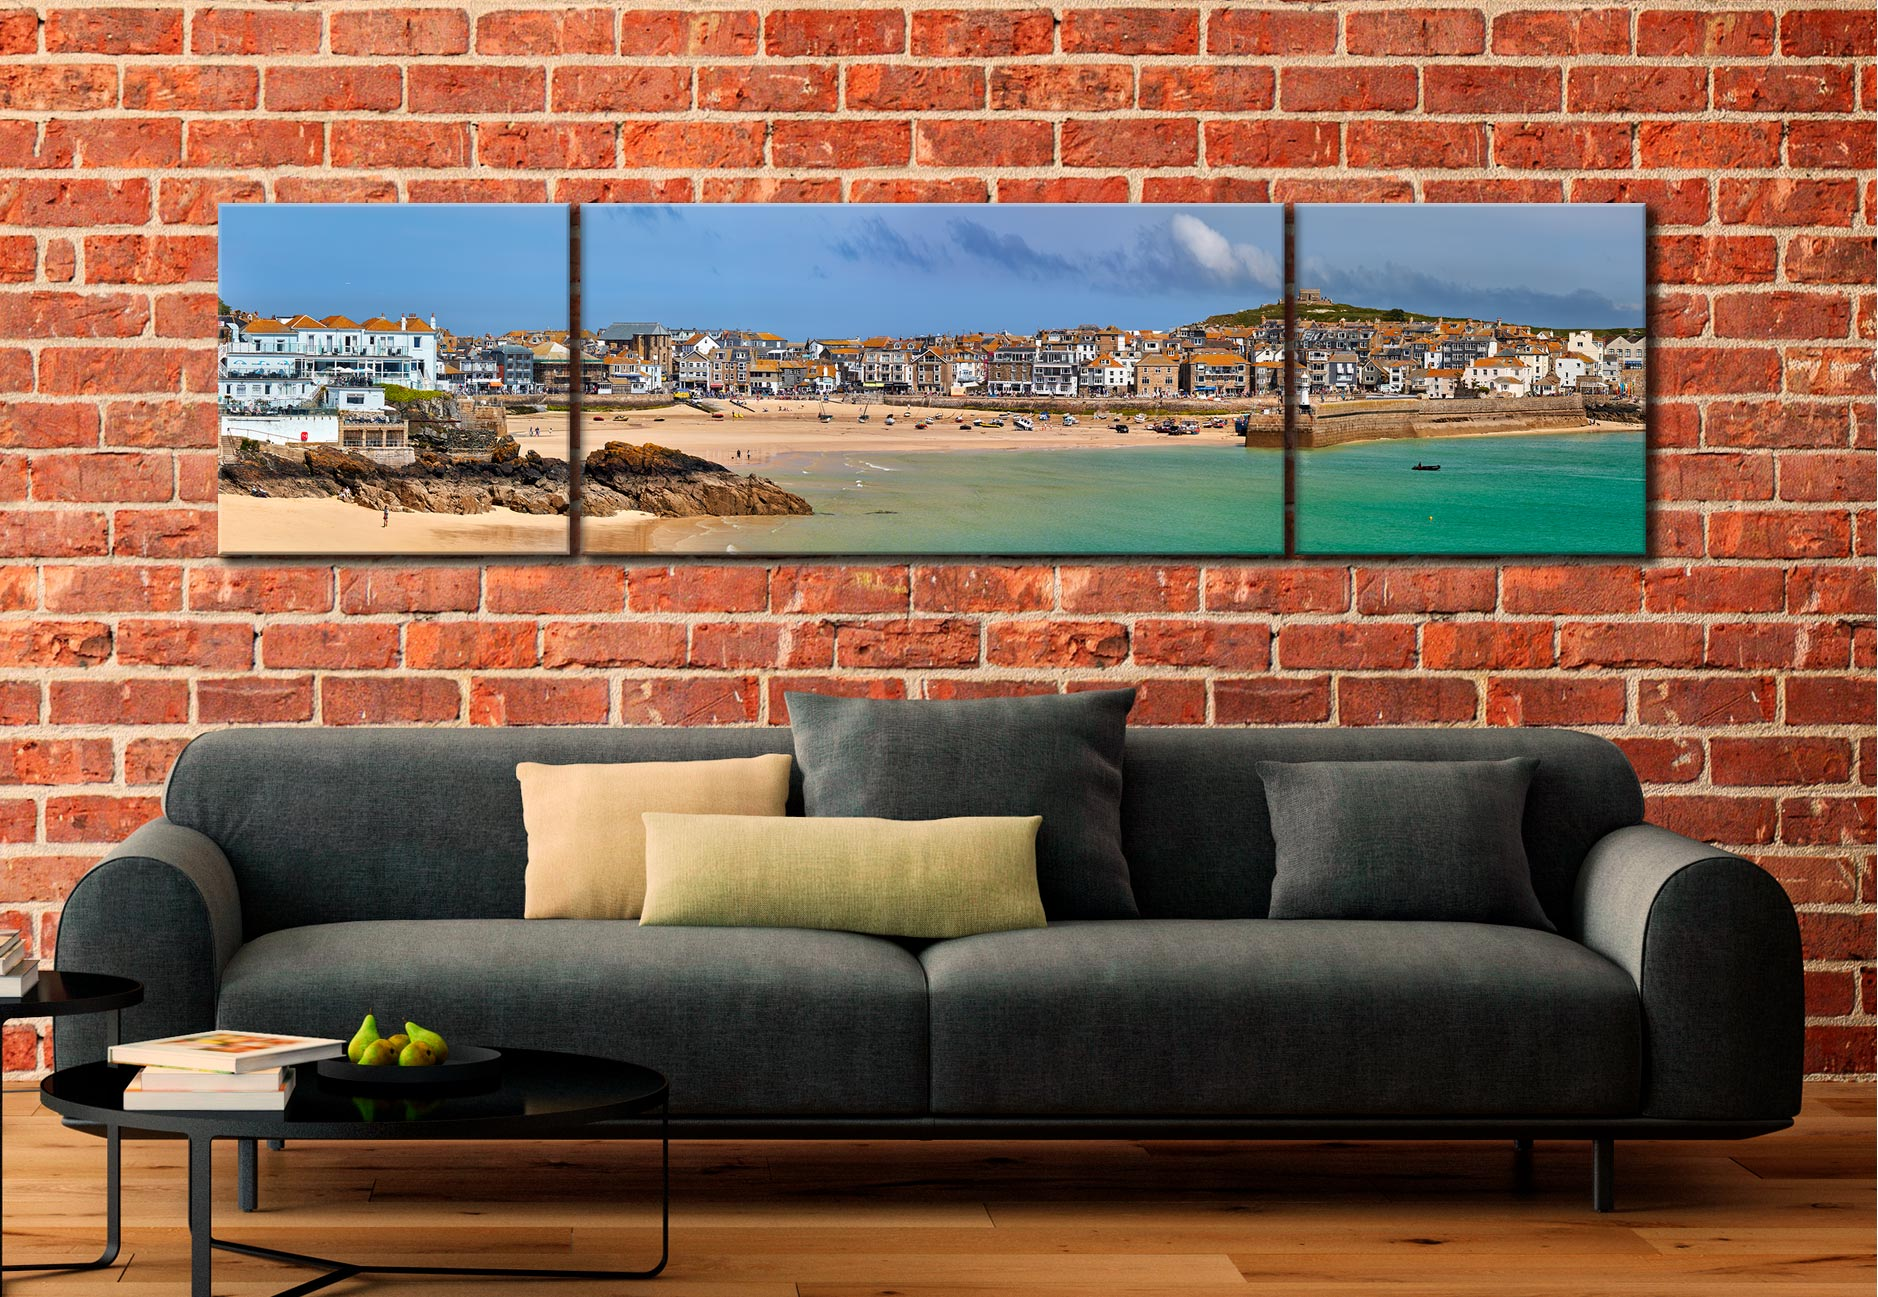 St Ives Seafront - 3 Panel Wide Centre Canvas on Wall